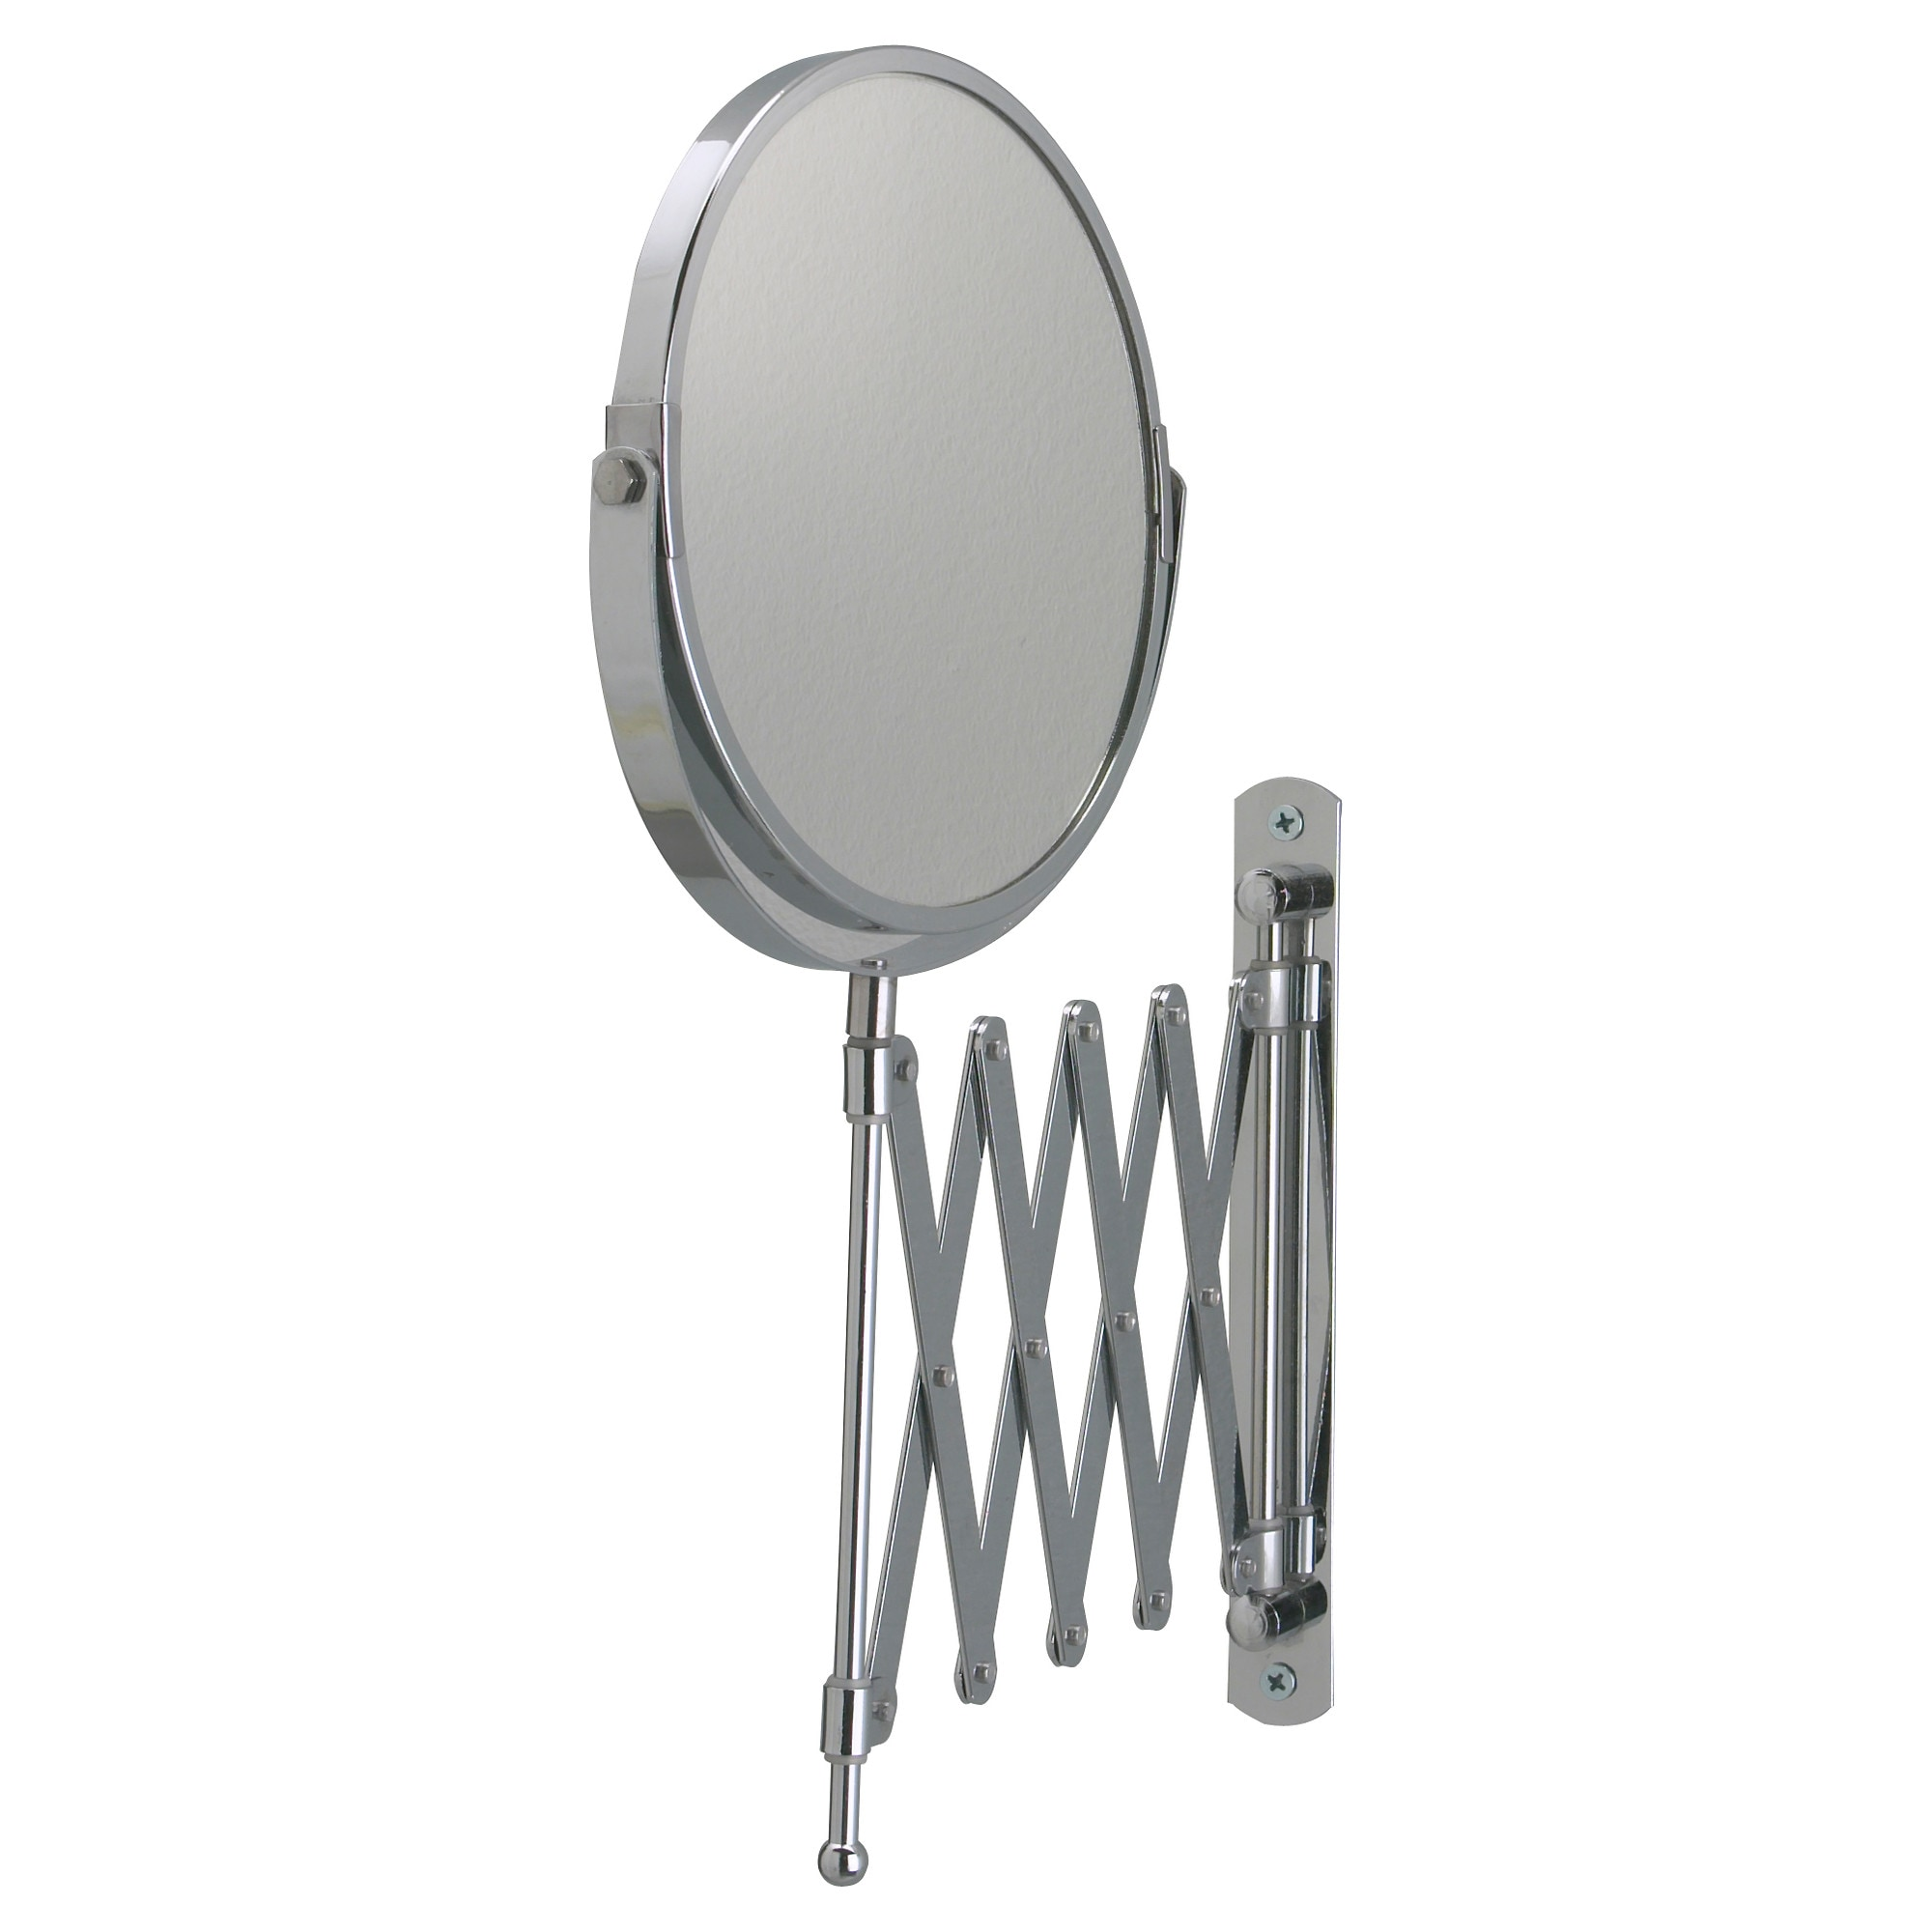 Fr Ck Mirror Stainless Steel Diameter 6 3 4